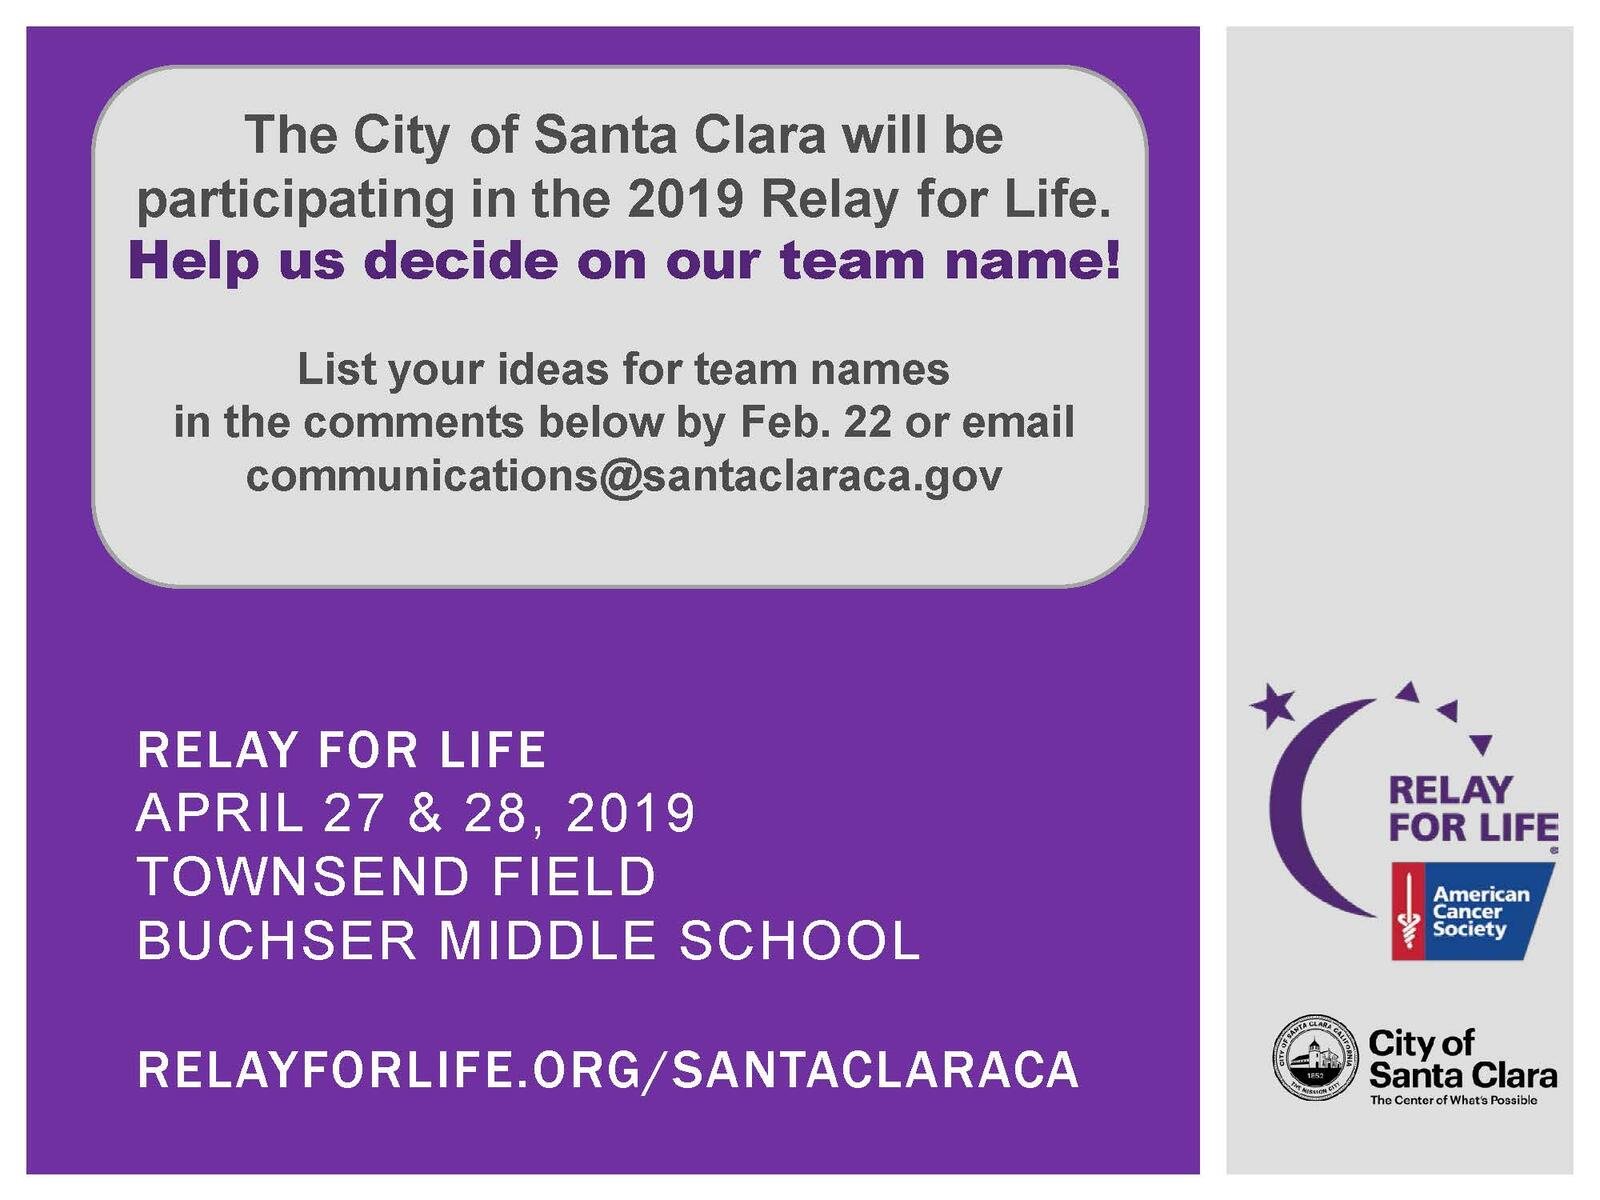 Help us decide on the City of Santa Clara team name for